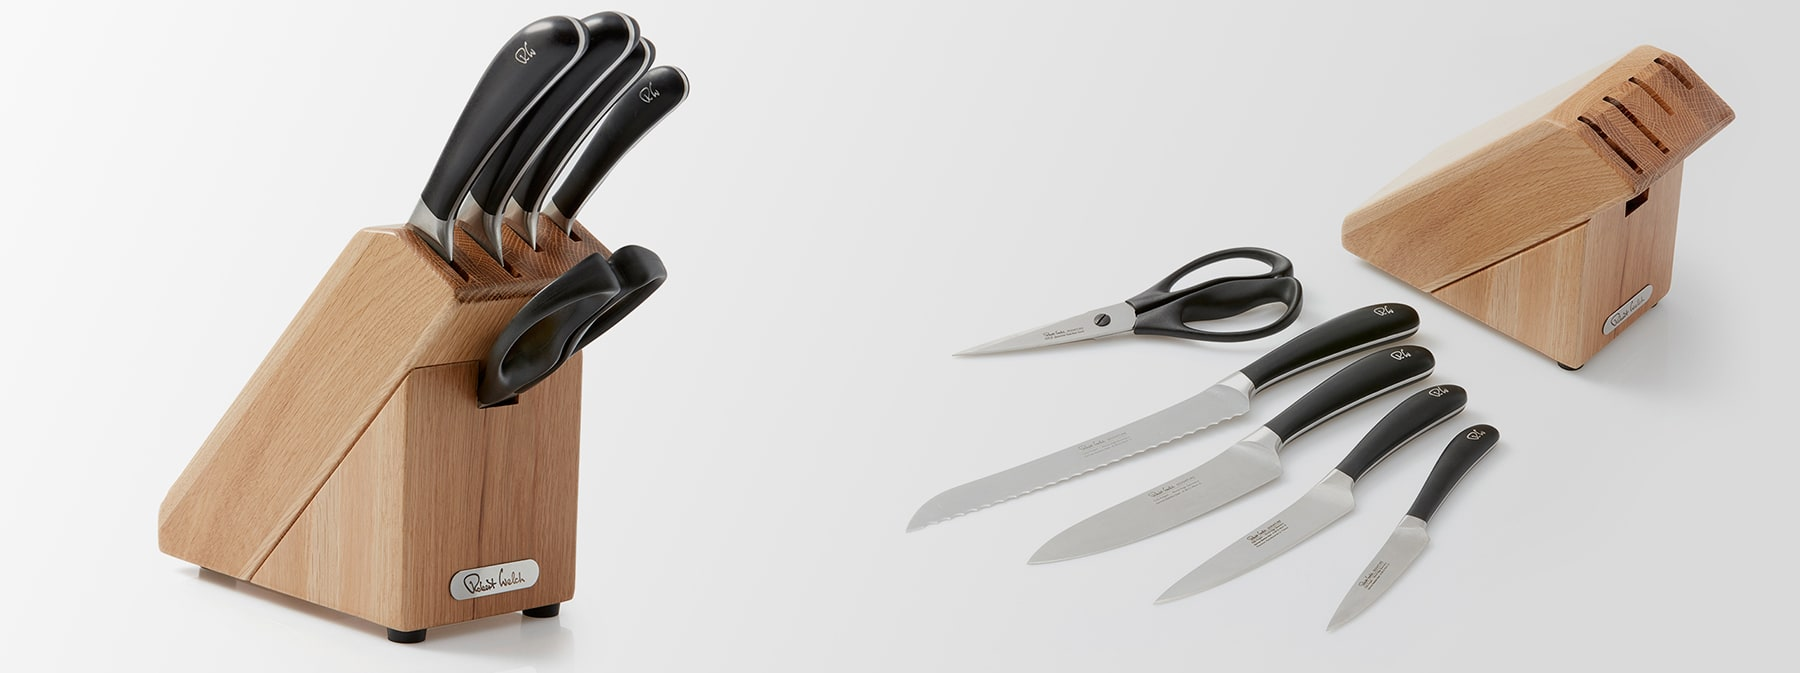 The Signature Compact Knife Block Set